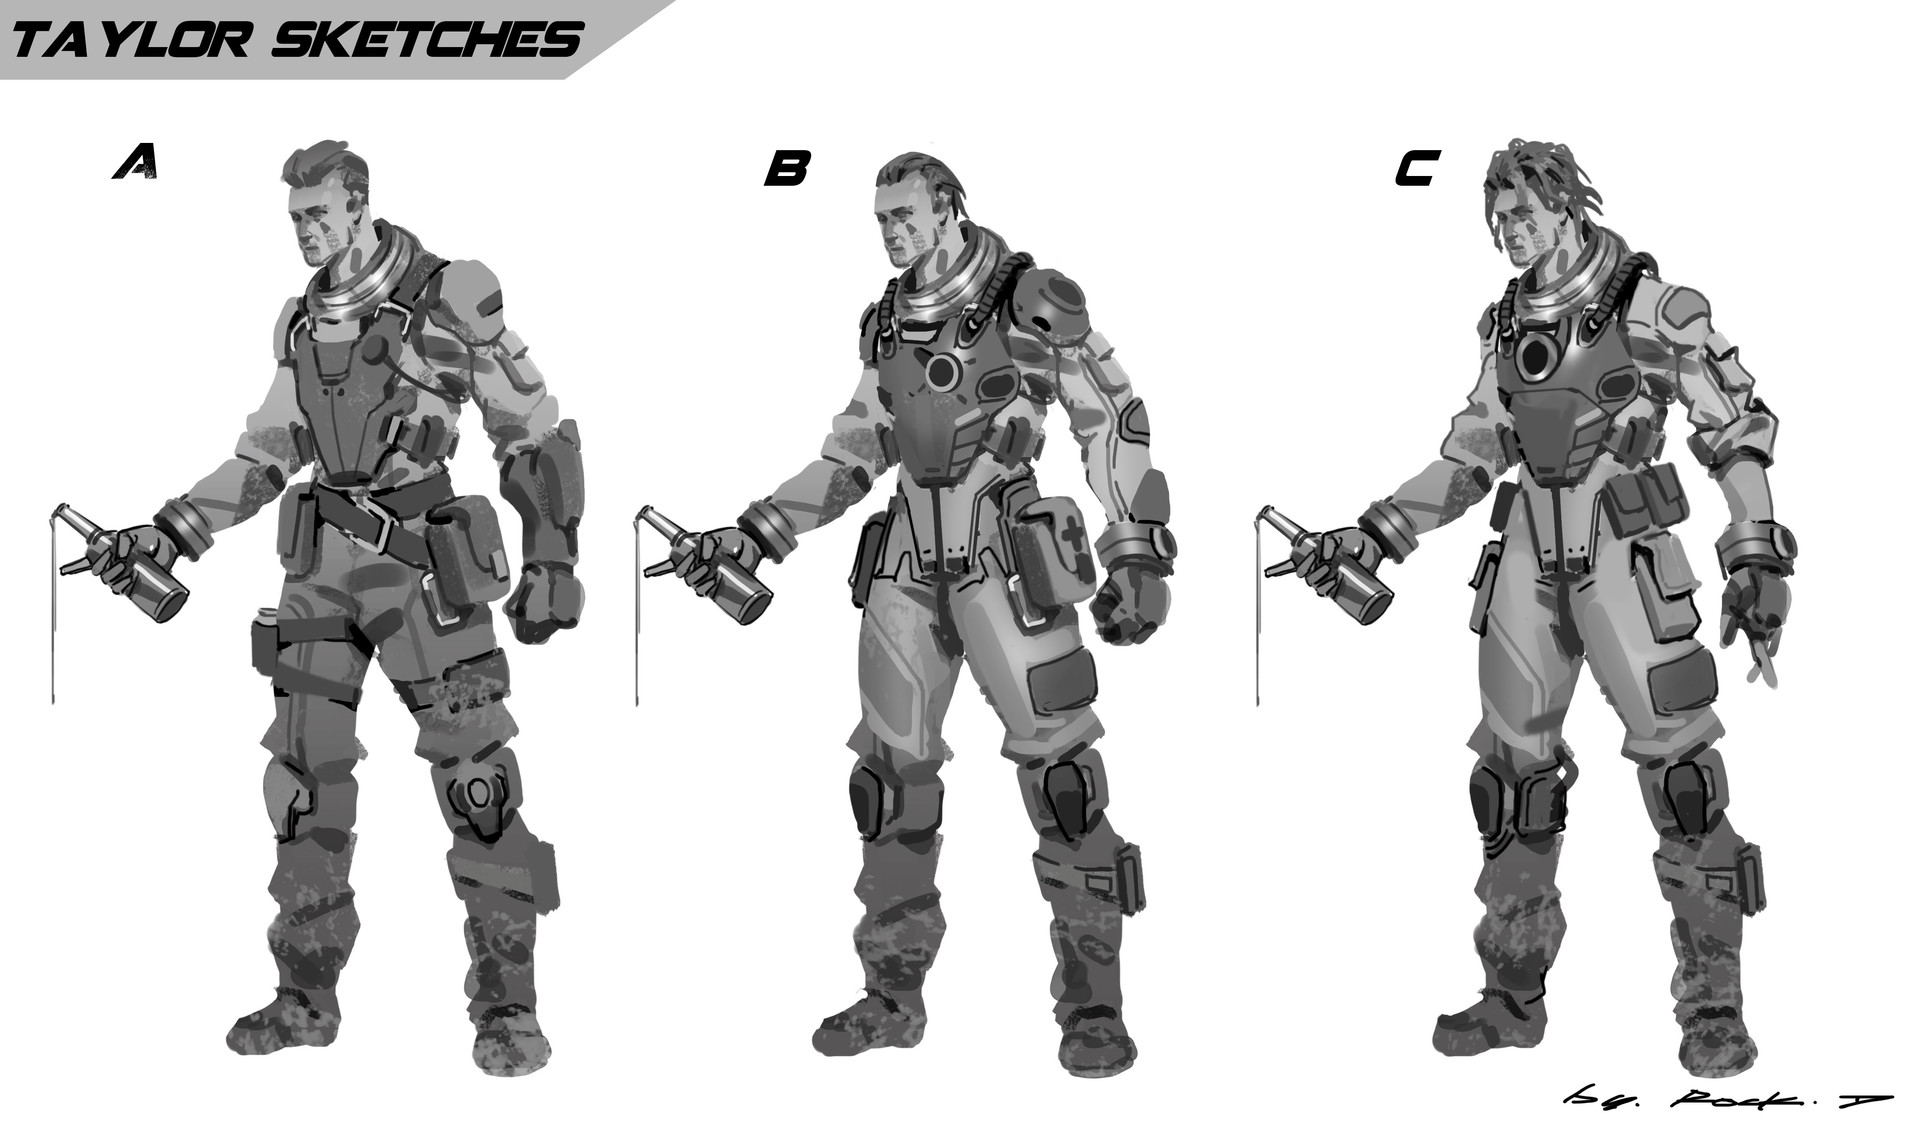 Rock d vincent rough concept